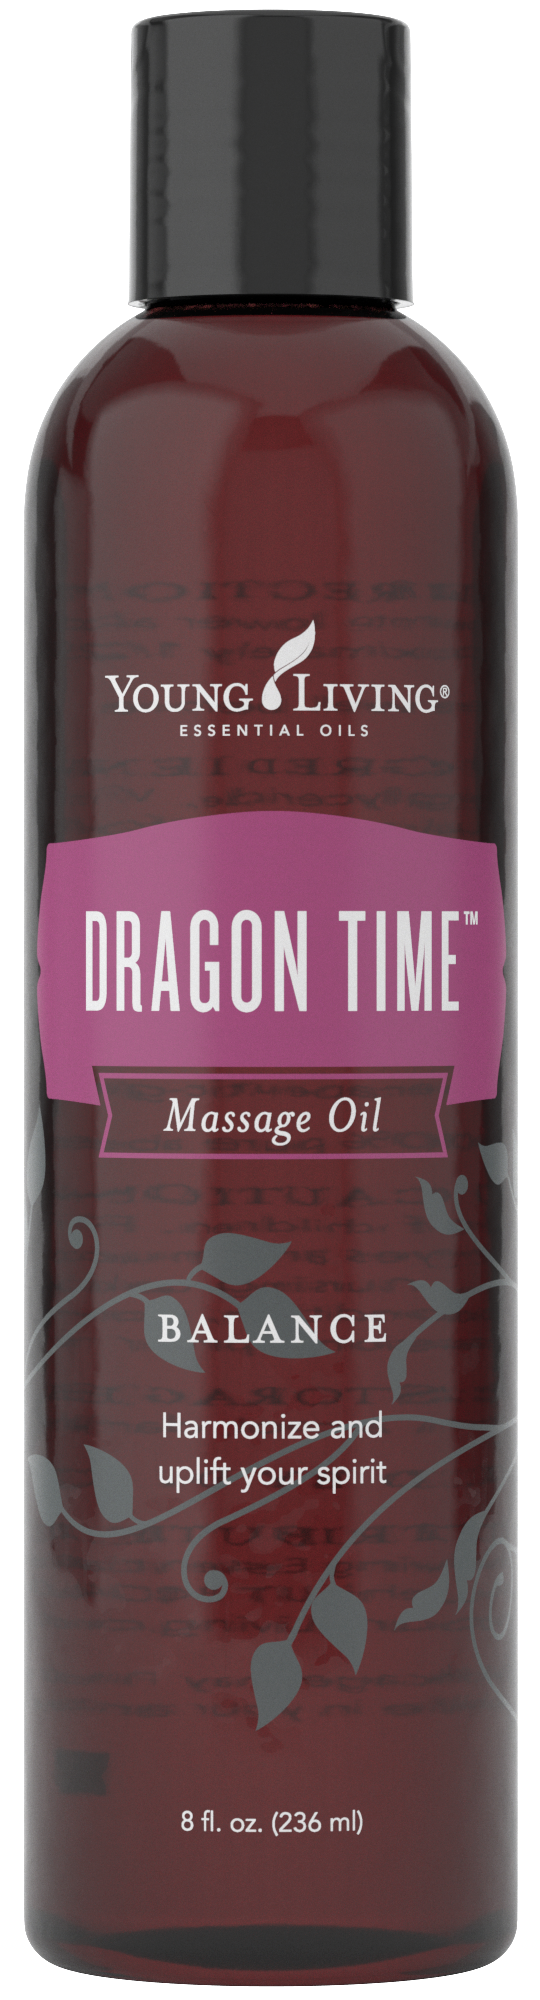 Dragon Time Massage Oil | Young Living essential oils